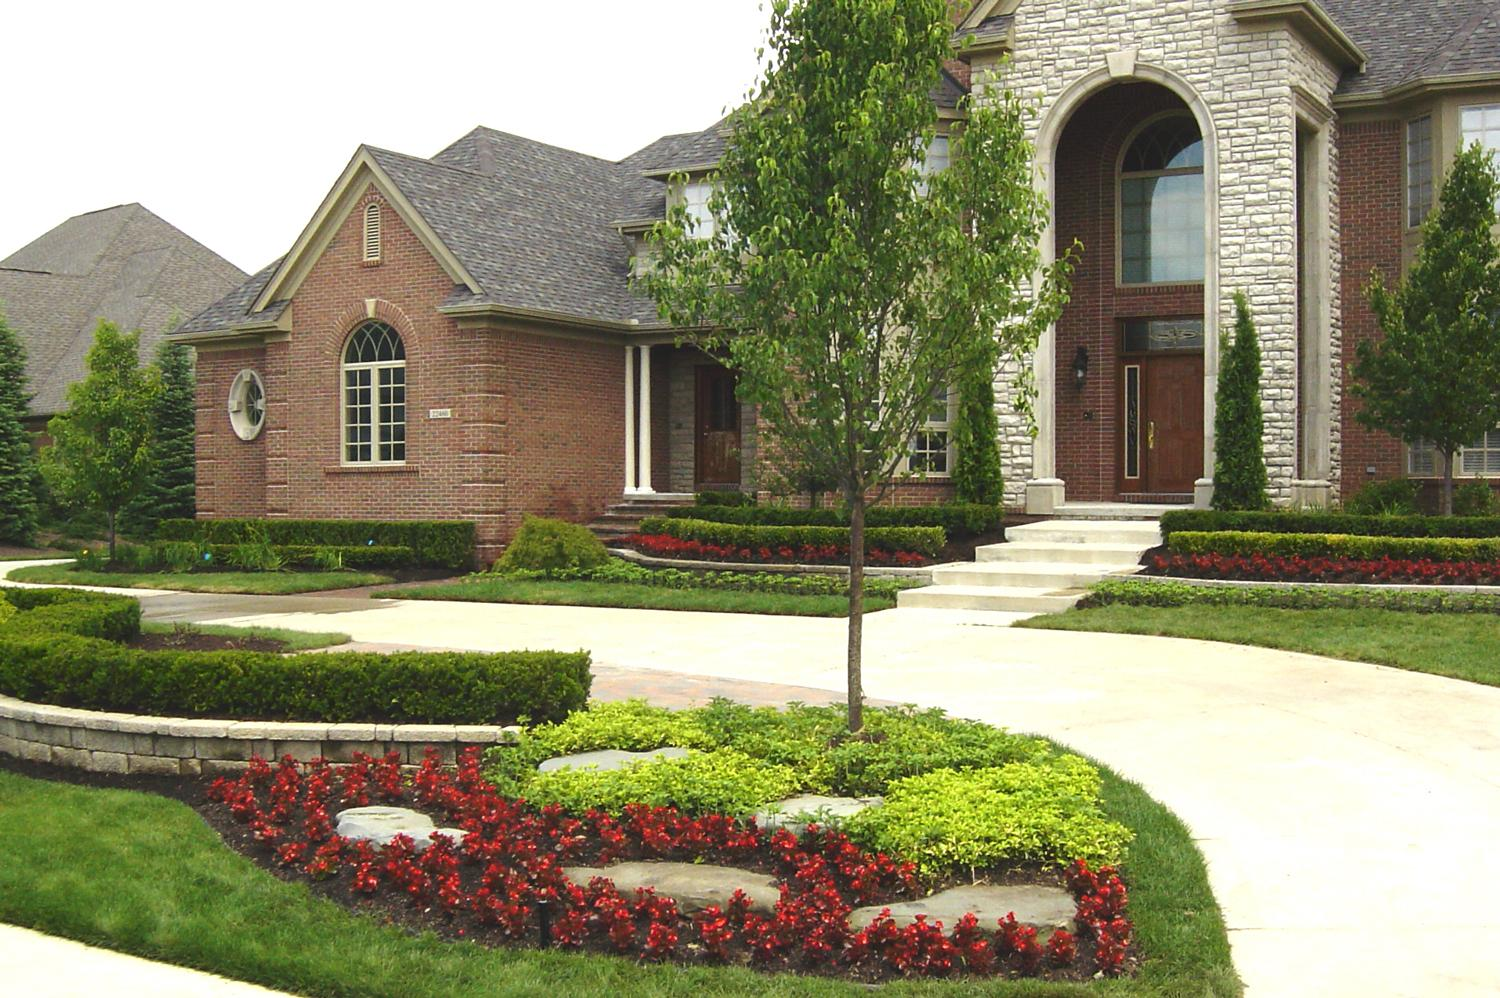 Front Yard Landscaping Ideas | Dream House Experience on Backyard Hardscape Ideas  id=54412